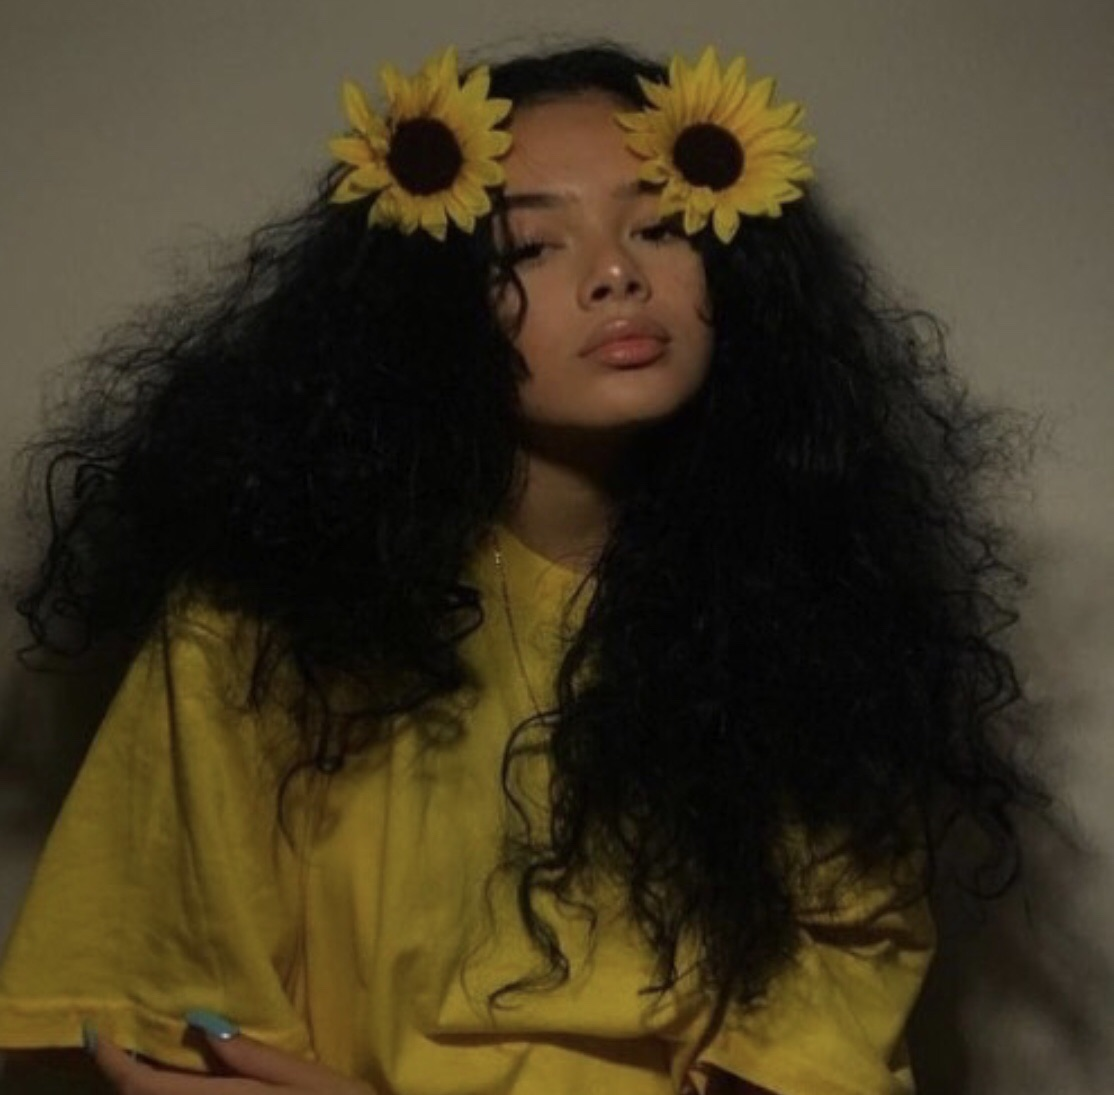 pretty, sunflower and girl